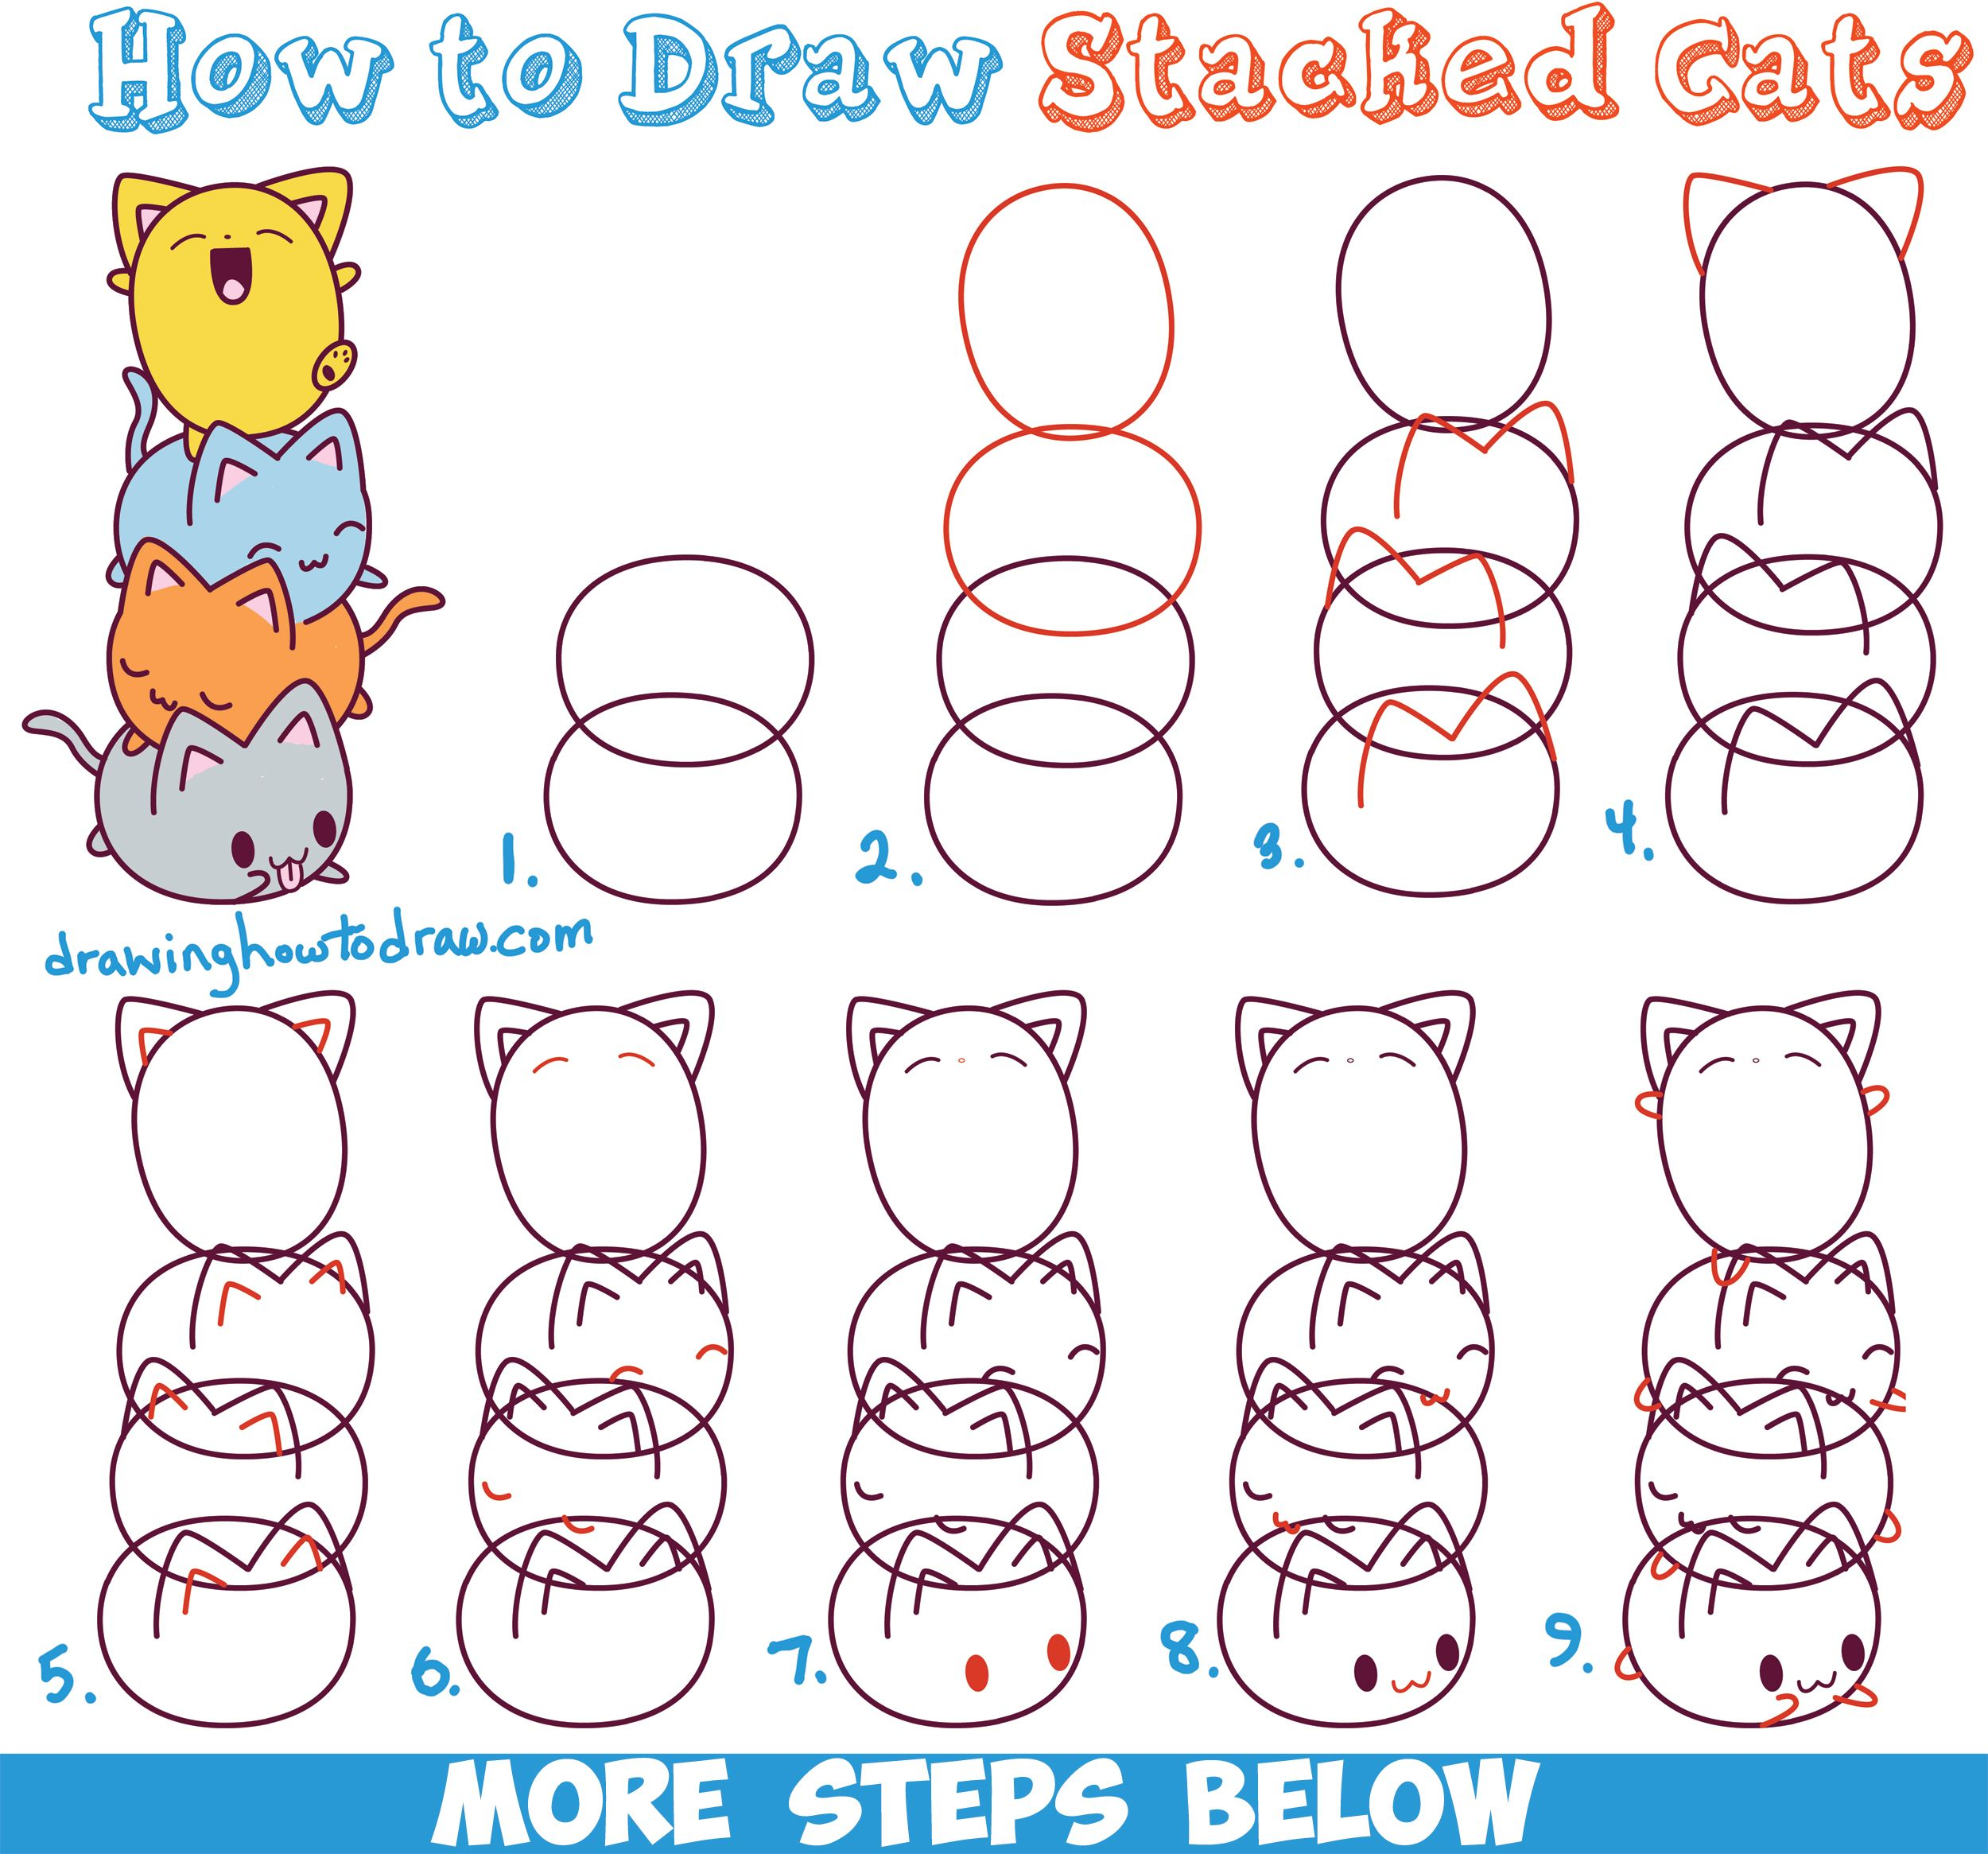 How to Draw Cute Kawaii Cats Stacked on Top of Each Other